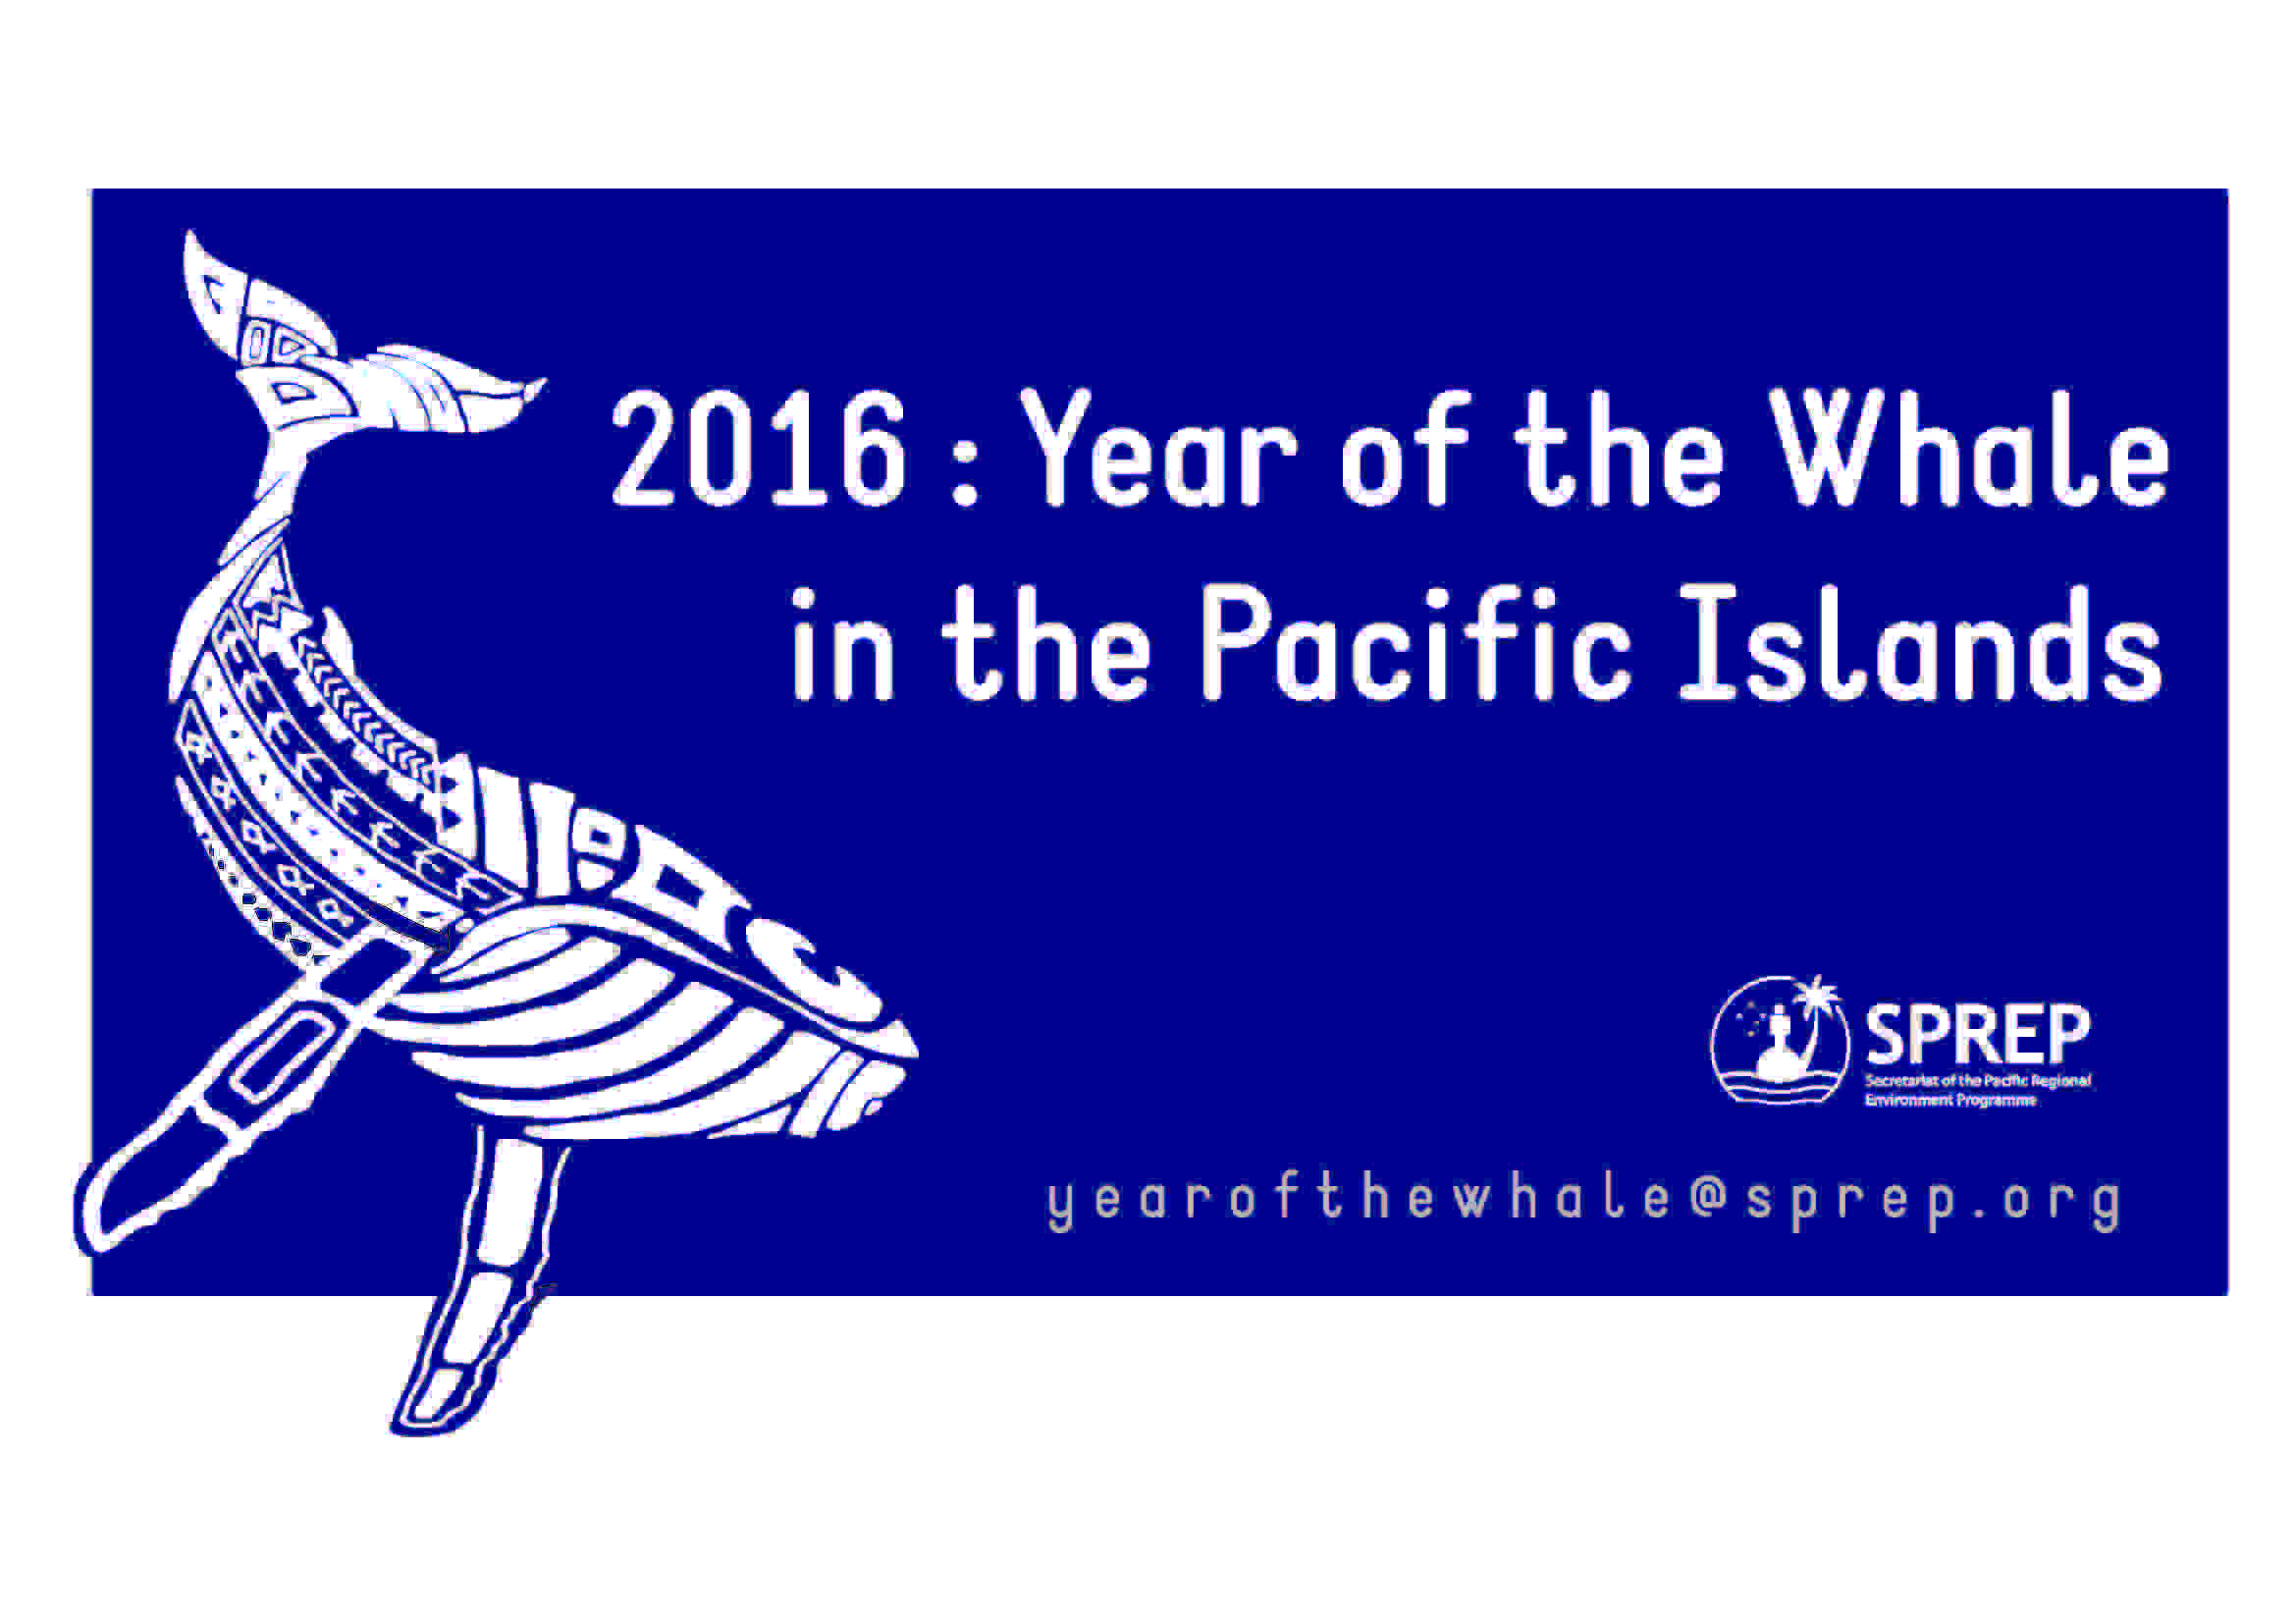 2016 : The Year of the Whale in the Pacific Islands